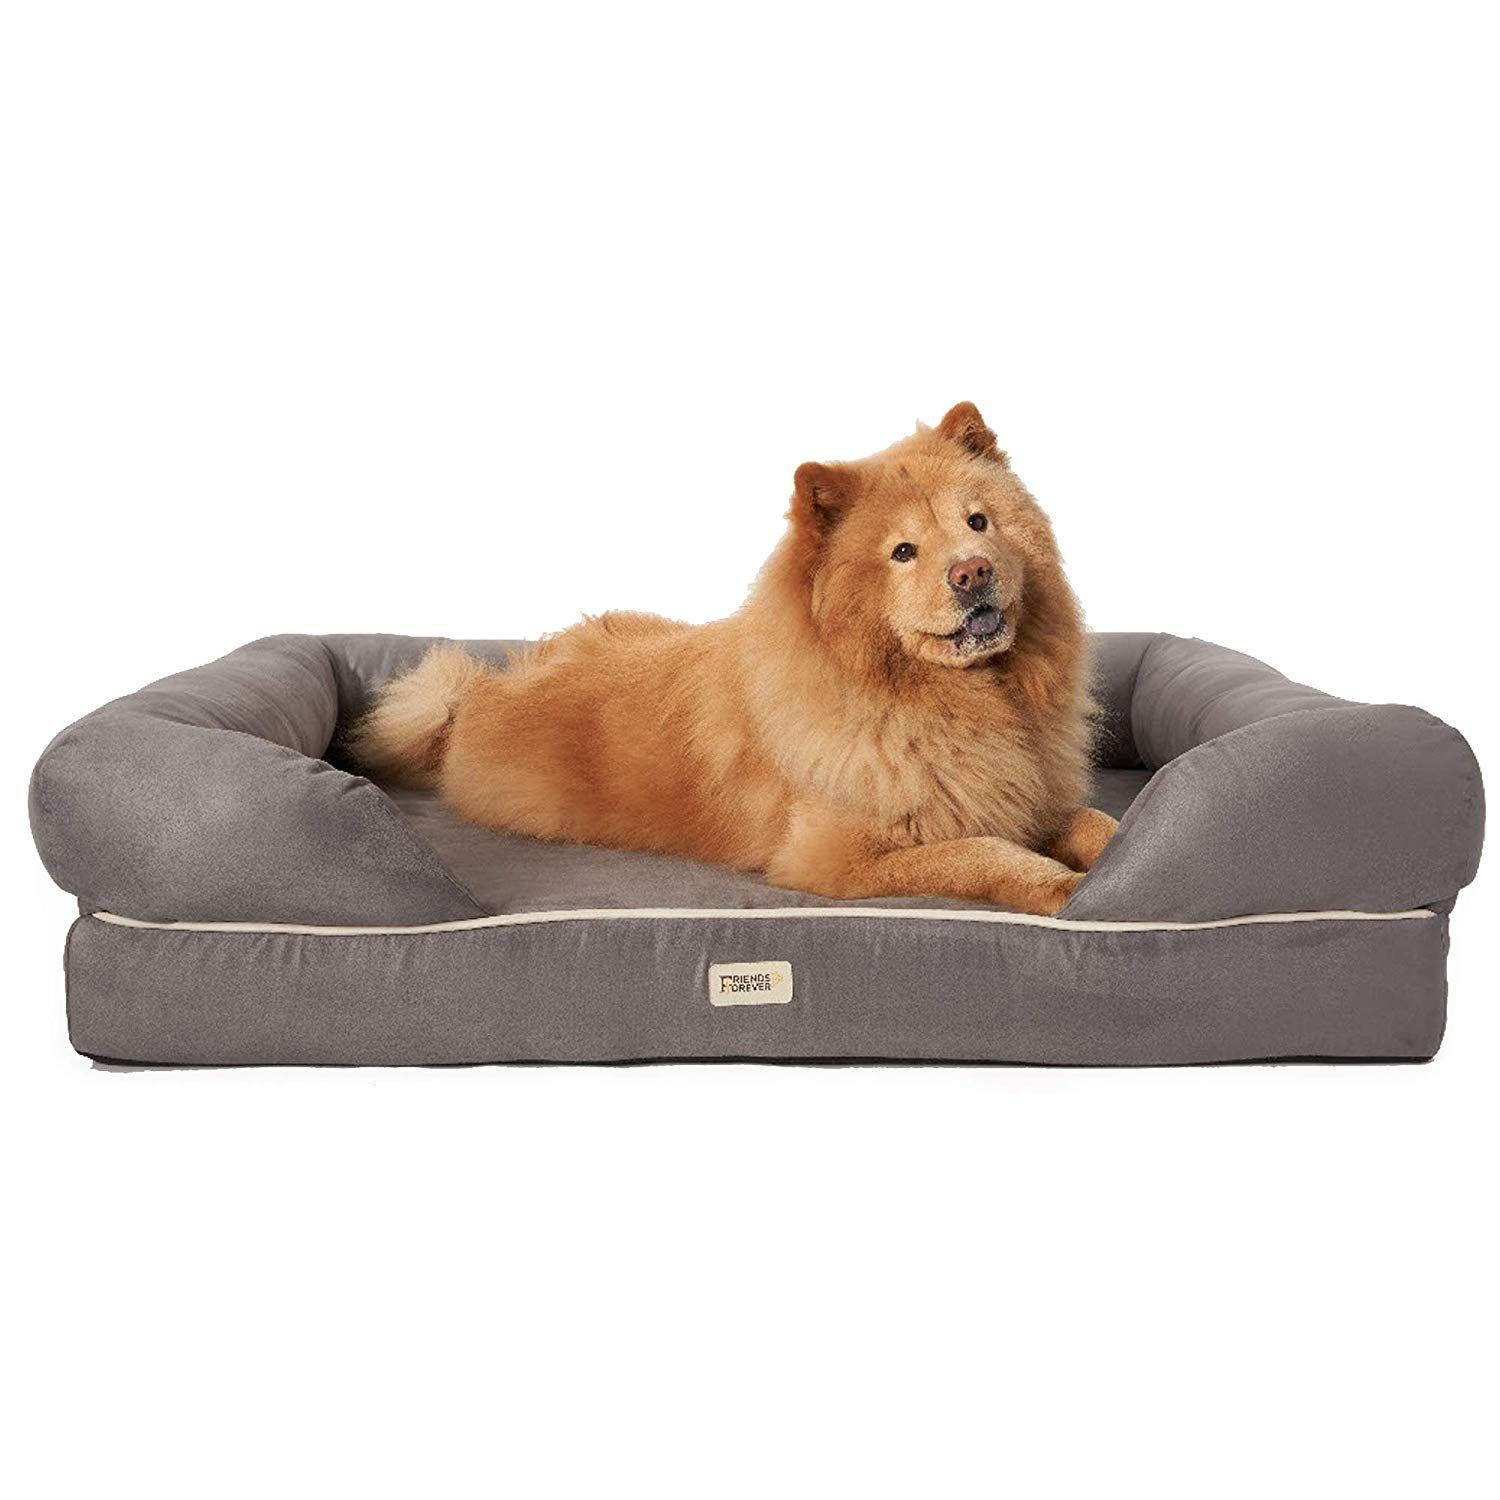 Large Dog Beds Top 10 Dog Beds for Your Big Dog